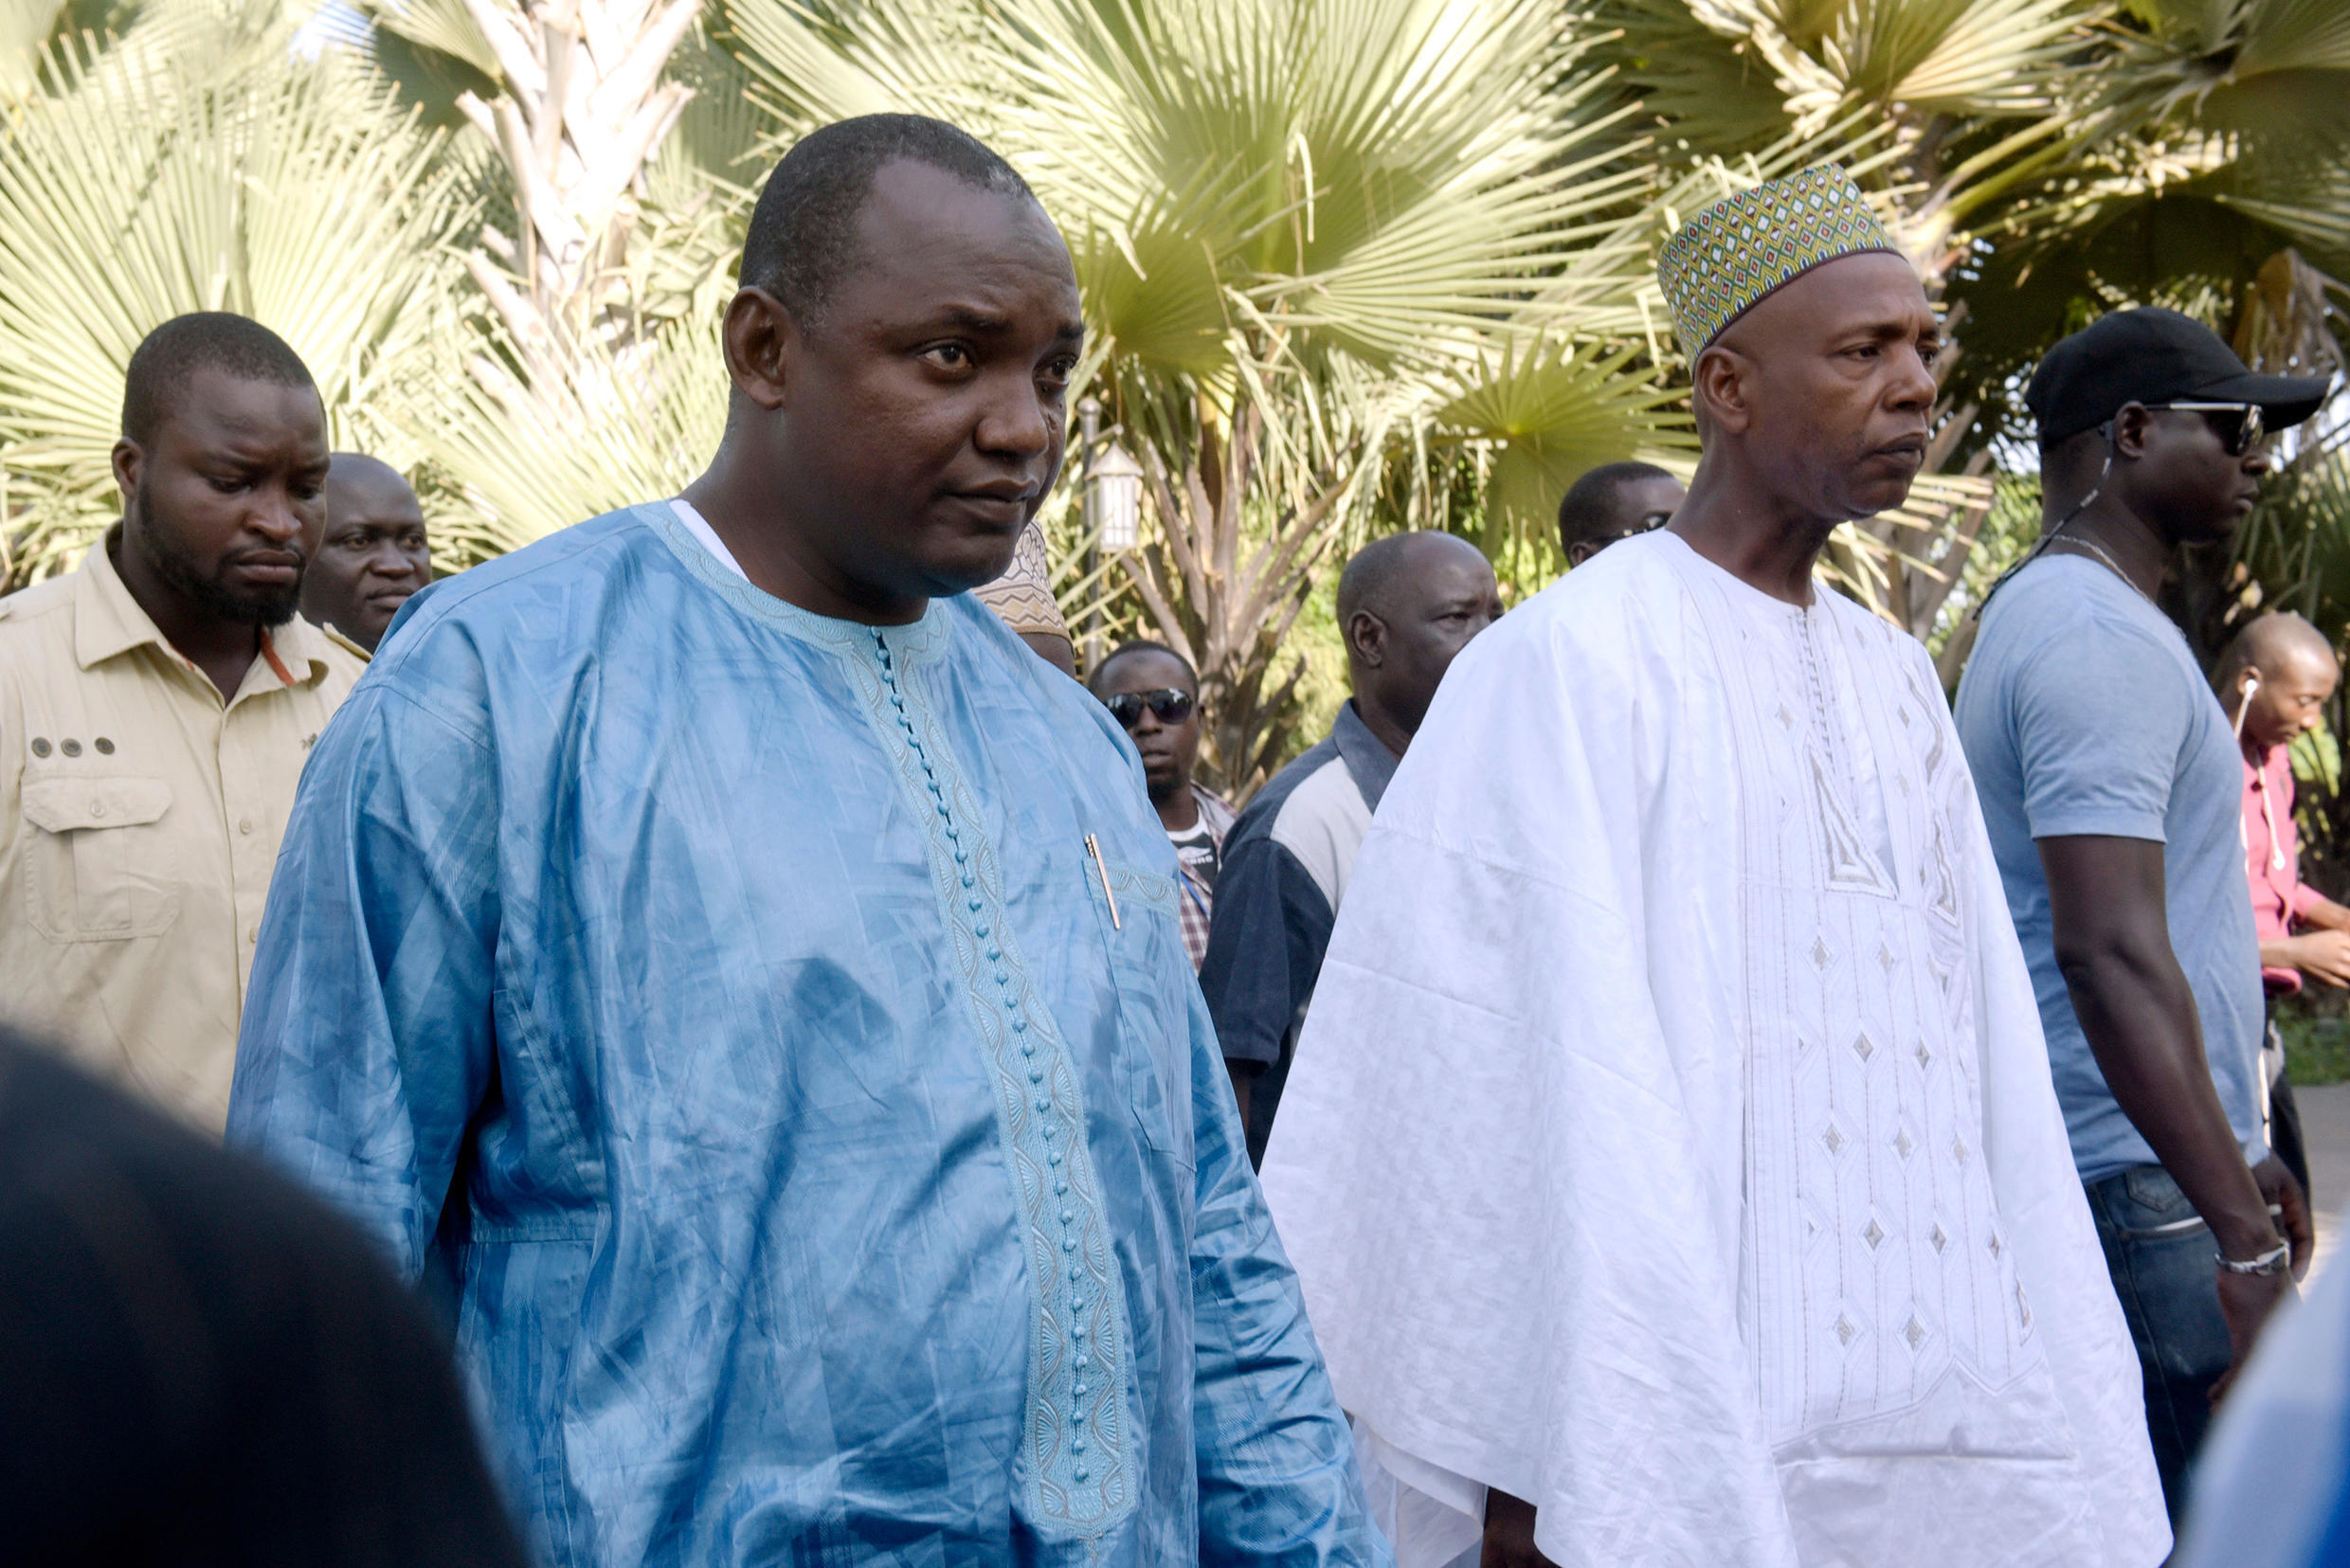 Barrow flanked by his supporters arrives for a meeting with African leaders on 13 December 2016.